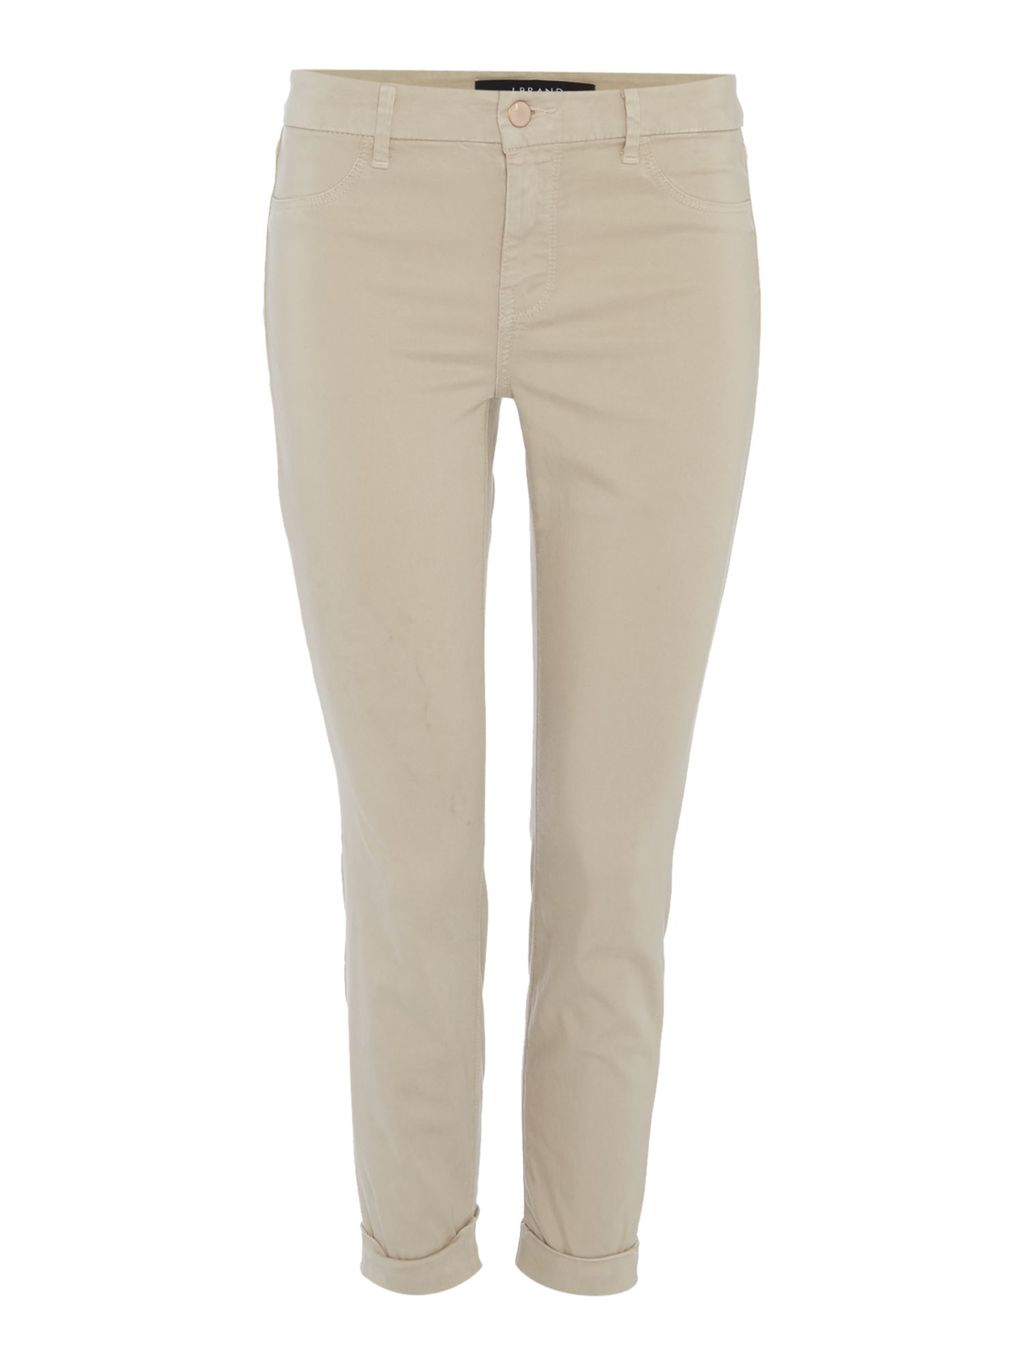 Anja Ankle Cuff Trouser, Beige - pattern: plain; waist: mid/regular rise; predominant colour: stone; occasions: casual, creative work; length: ankle length; fibres: cotton - stretch; fit: slim leg; pattern type: fabric; texture group: woven light midweight; style: standard; season: s/s 2016; wardrobe: basic